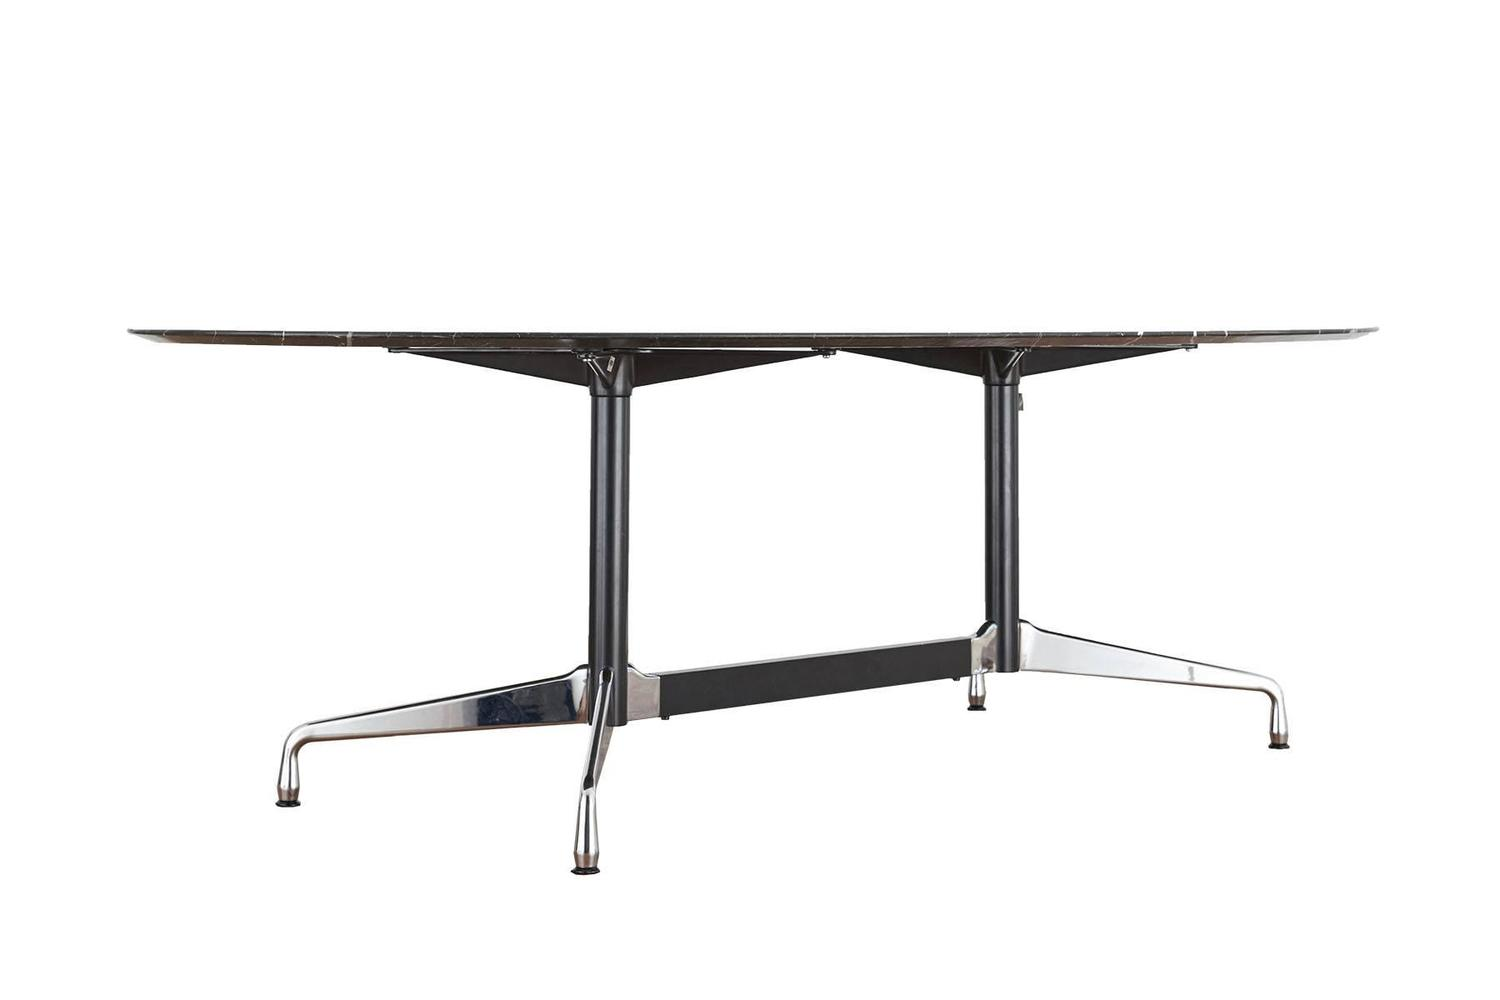 Segmented Black Marble Table by Charles and Ray Eames for  : marmortisch04z from www.1stdibs.com size 1500 x 1000 jpeg 27kB